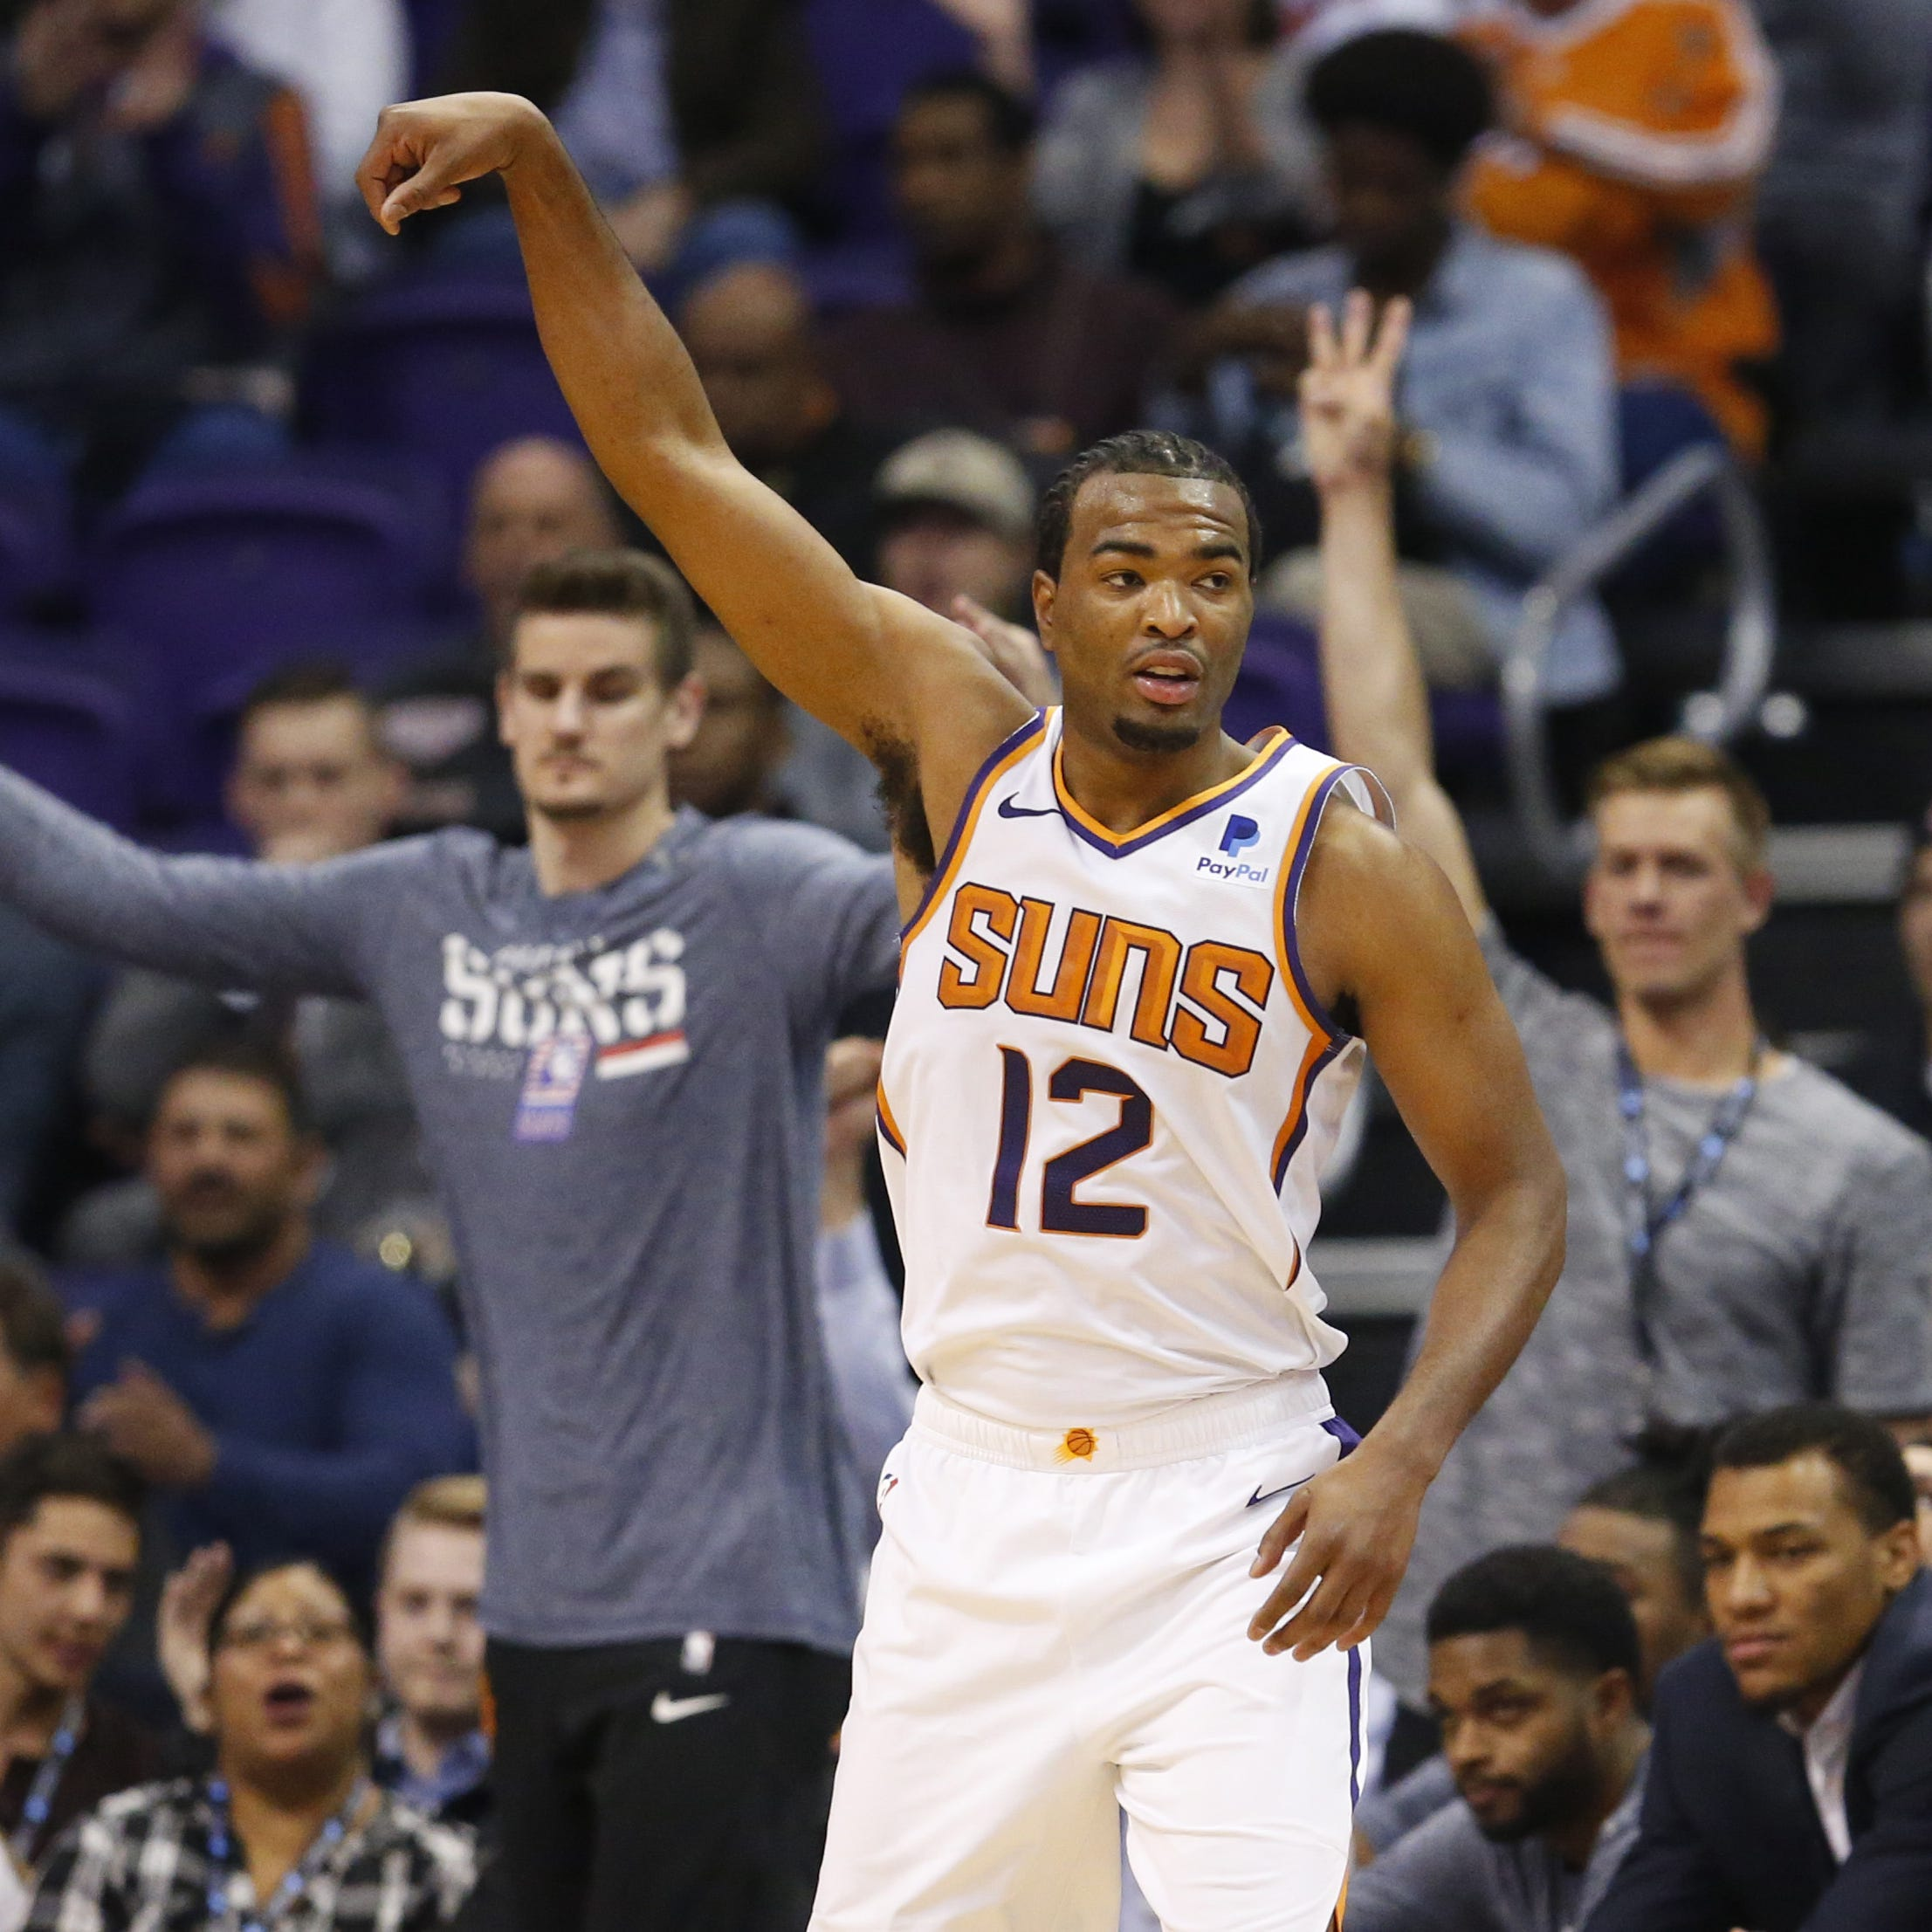 Did the Suns find a sustainable lineup in their victory over Spurs?